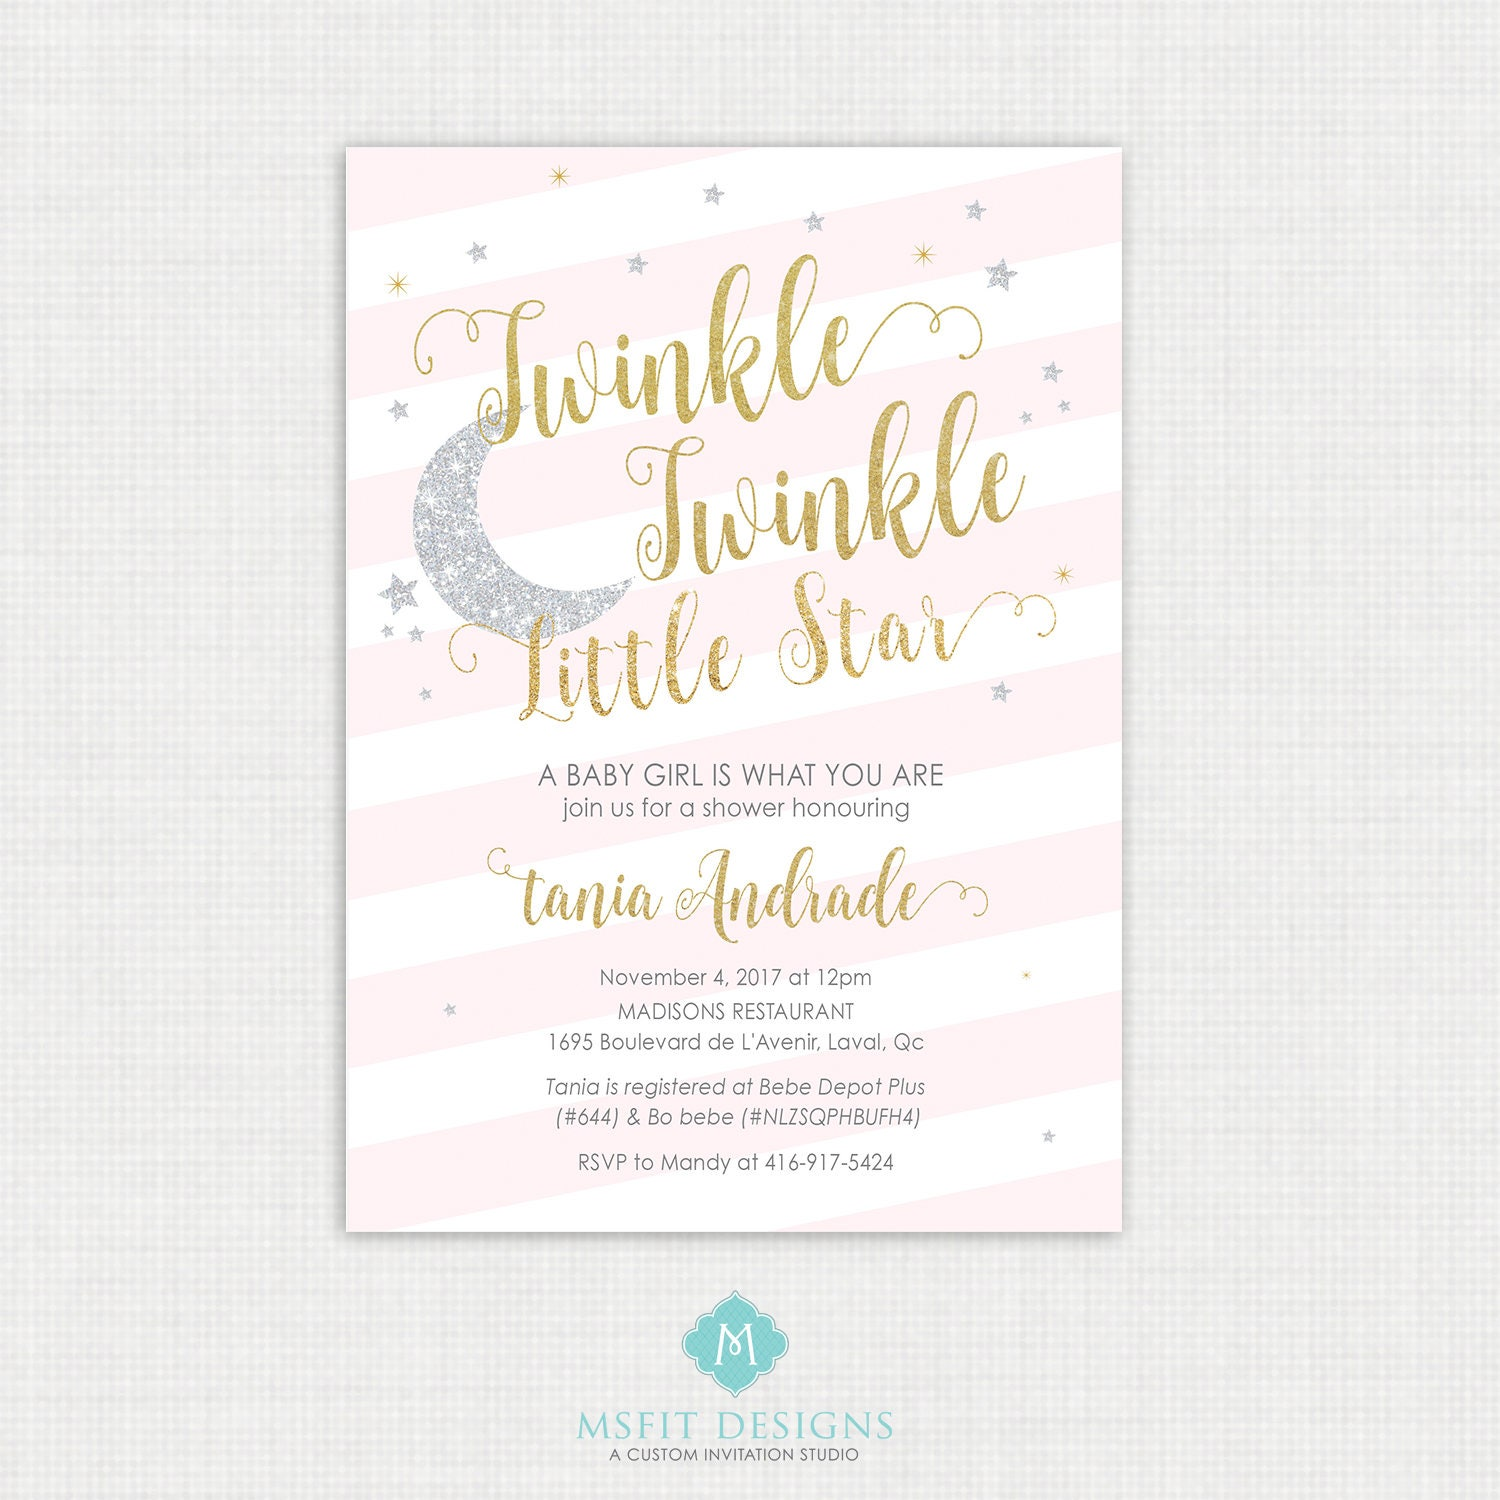 Twinkle Twinkle Little Star Baby Shower Invitations Twinkle